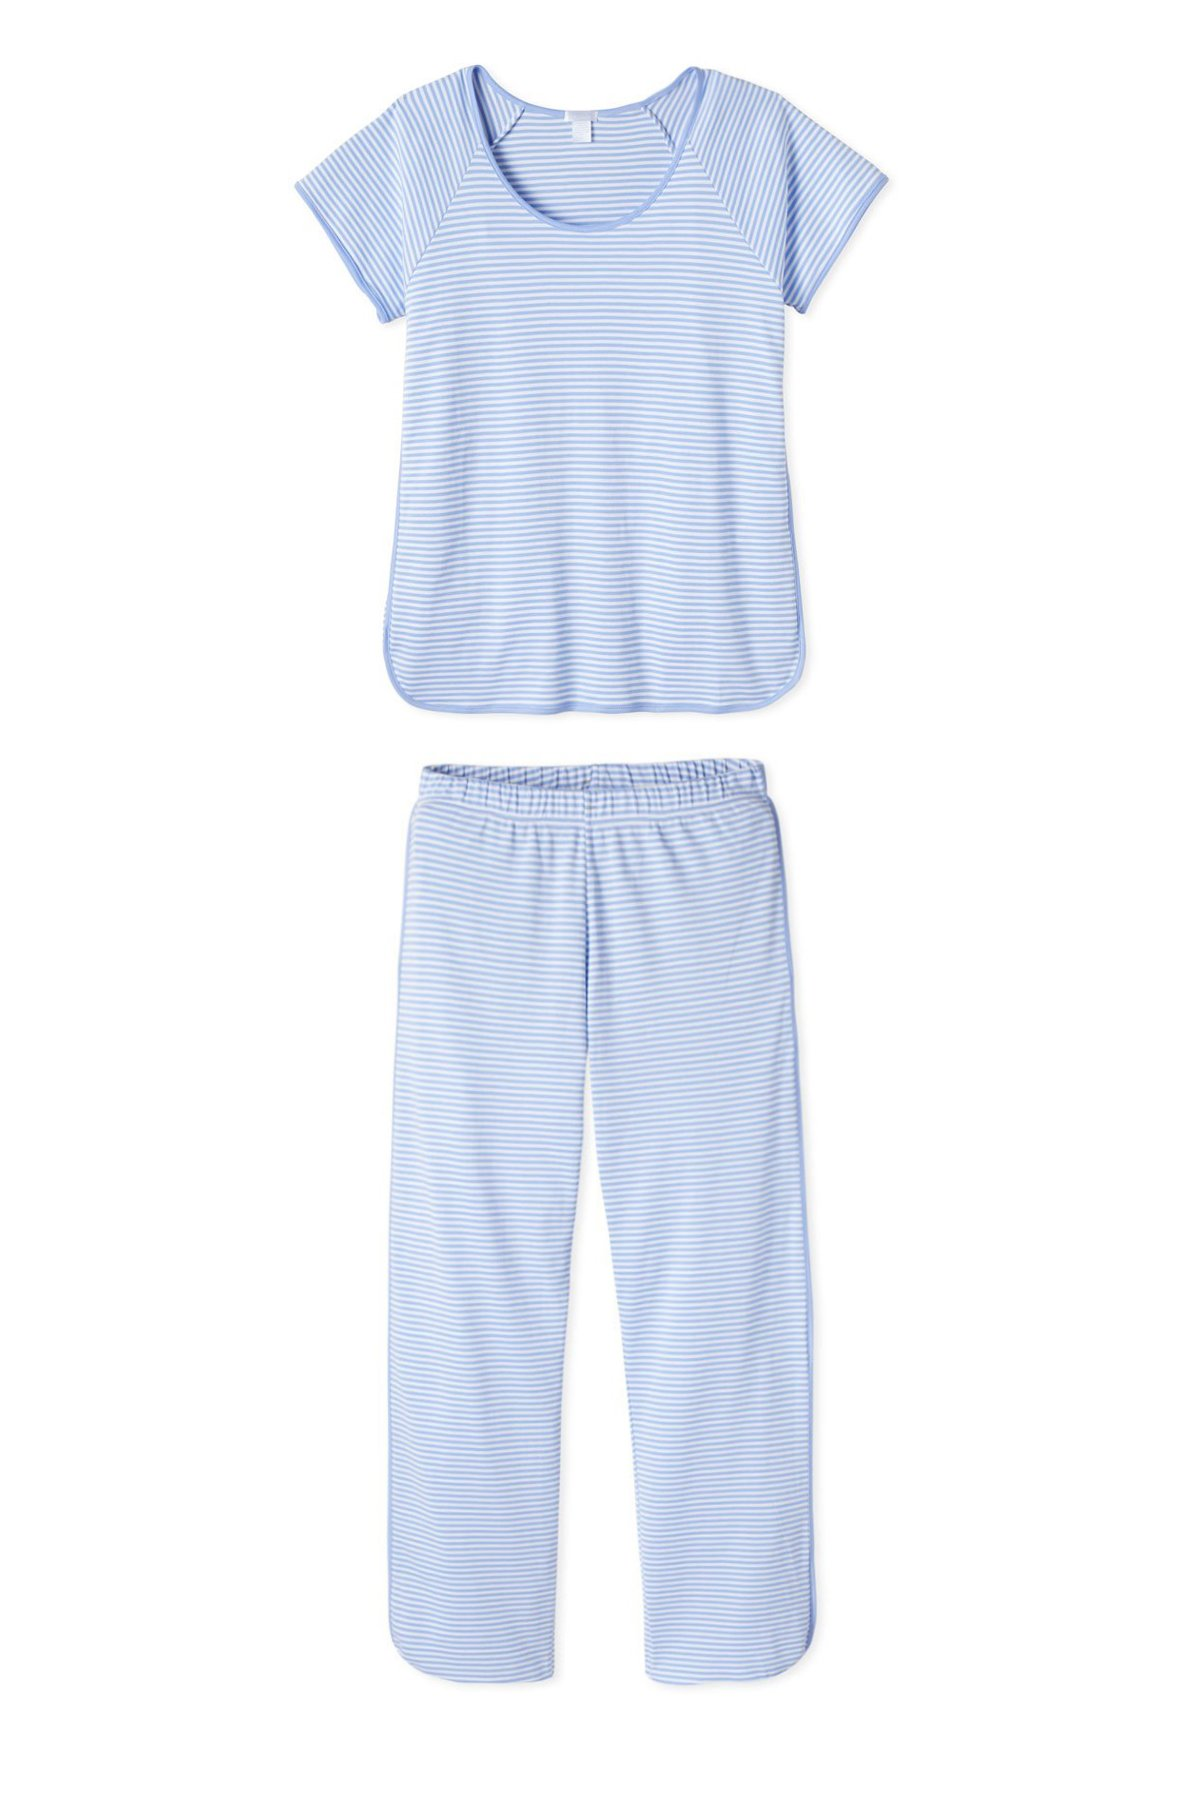 Lake PJs for Mother's Day